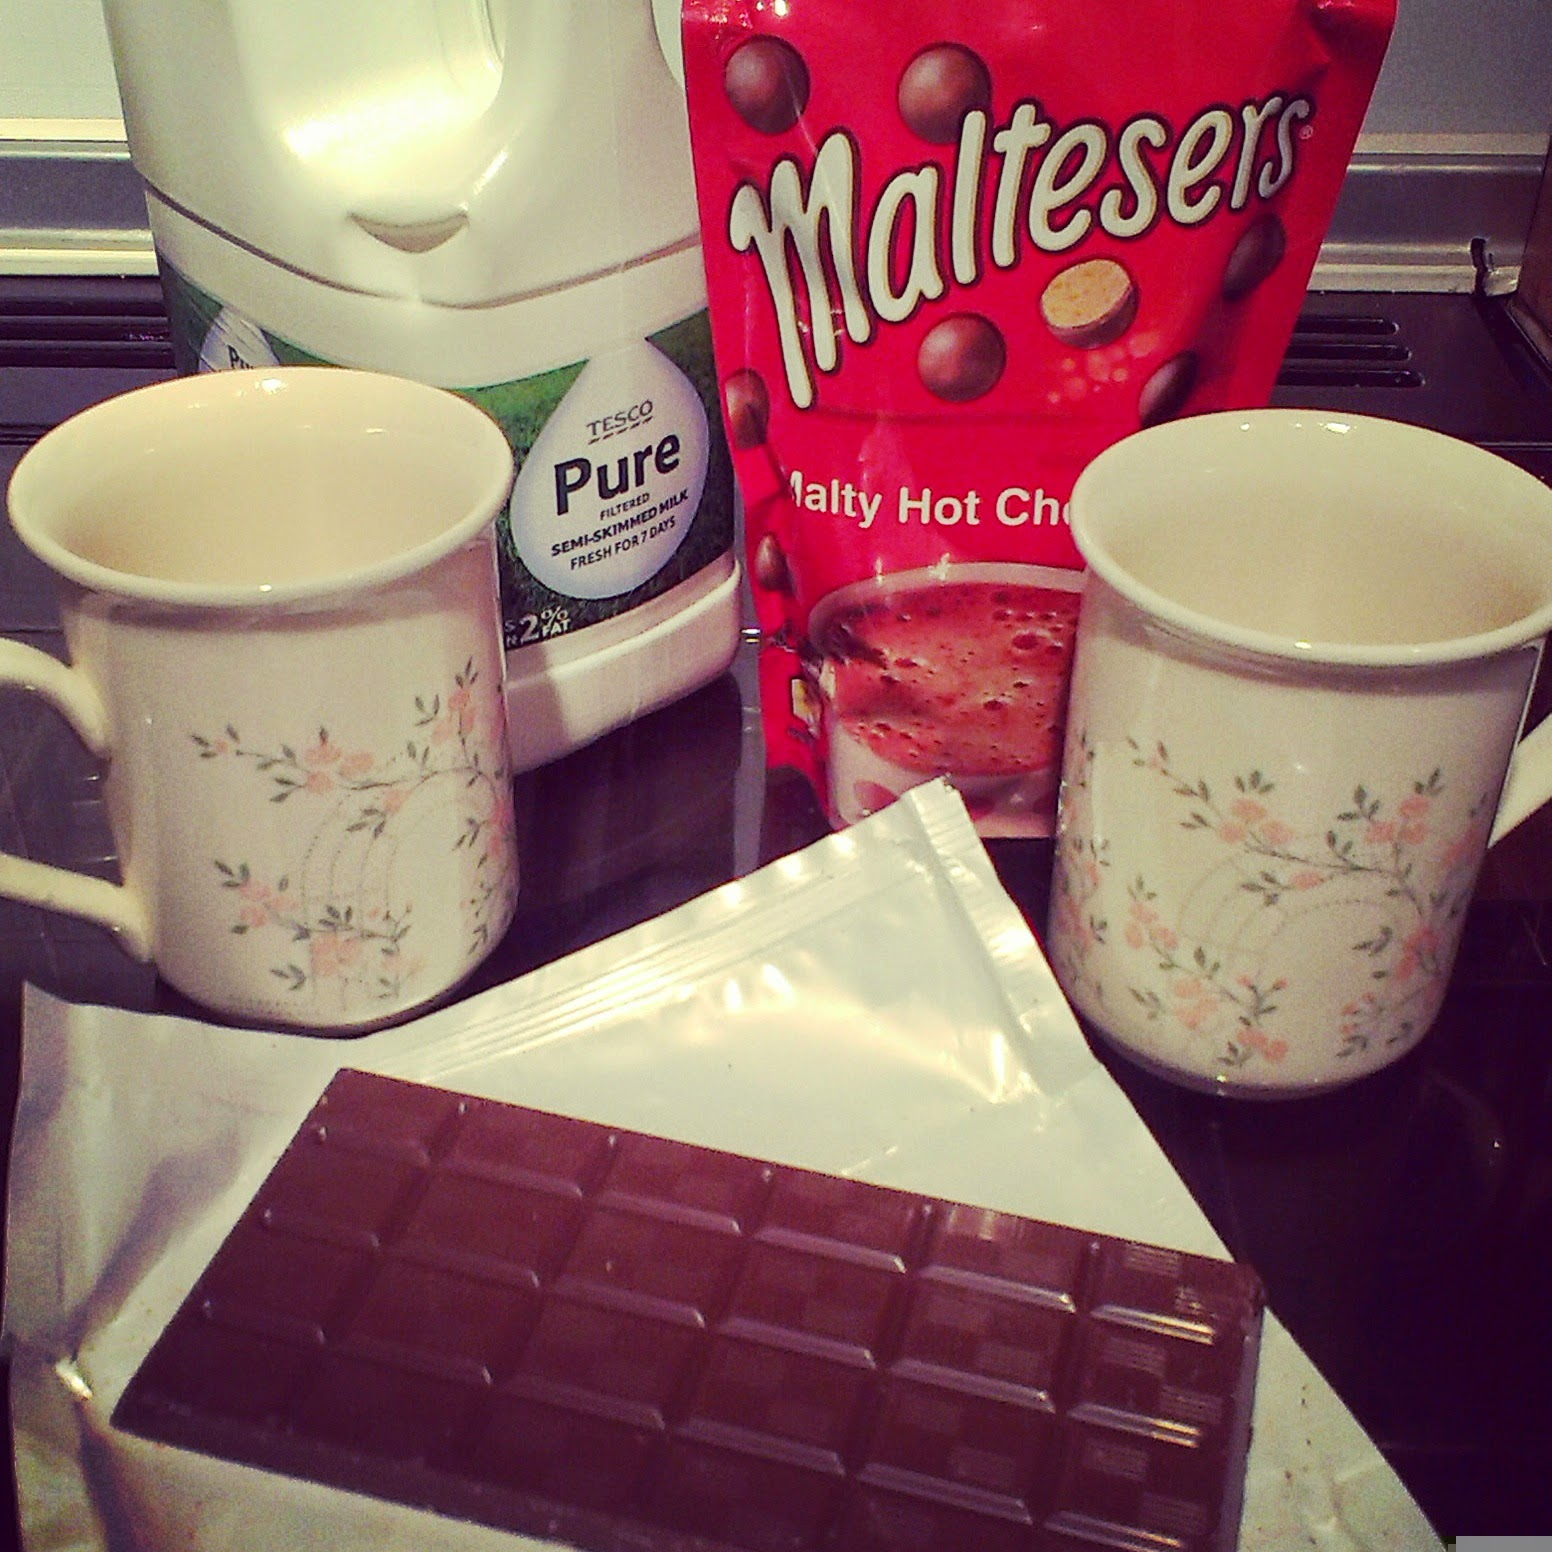 10pm - Making hot chocolate